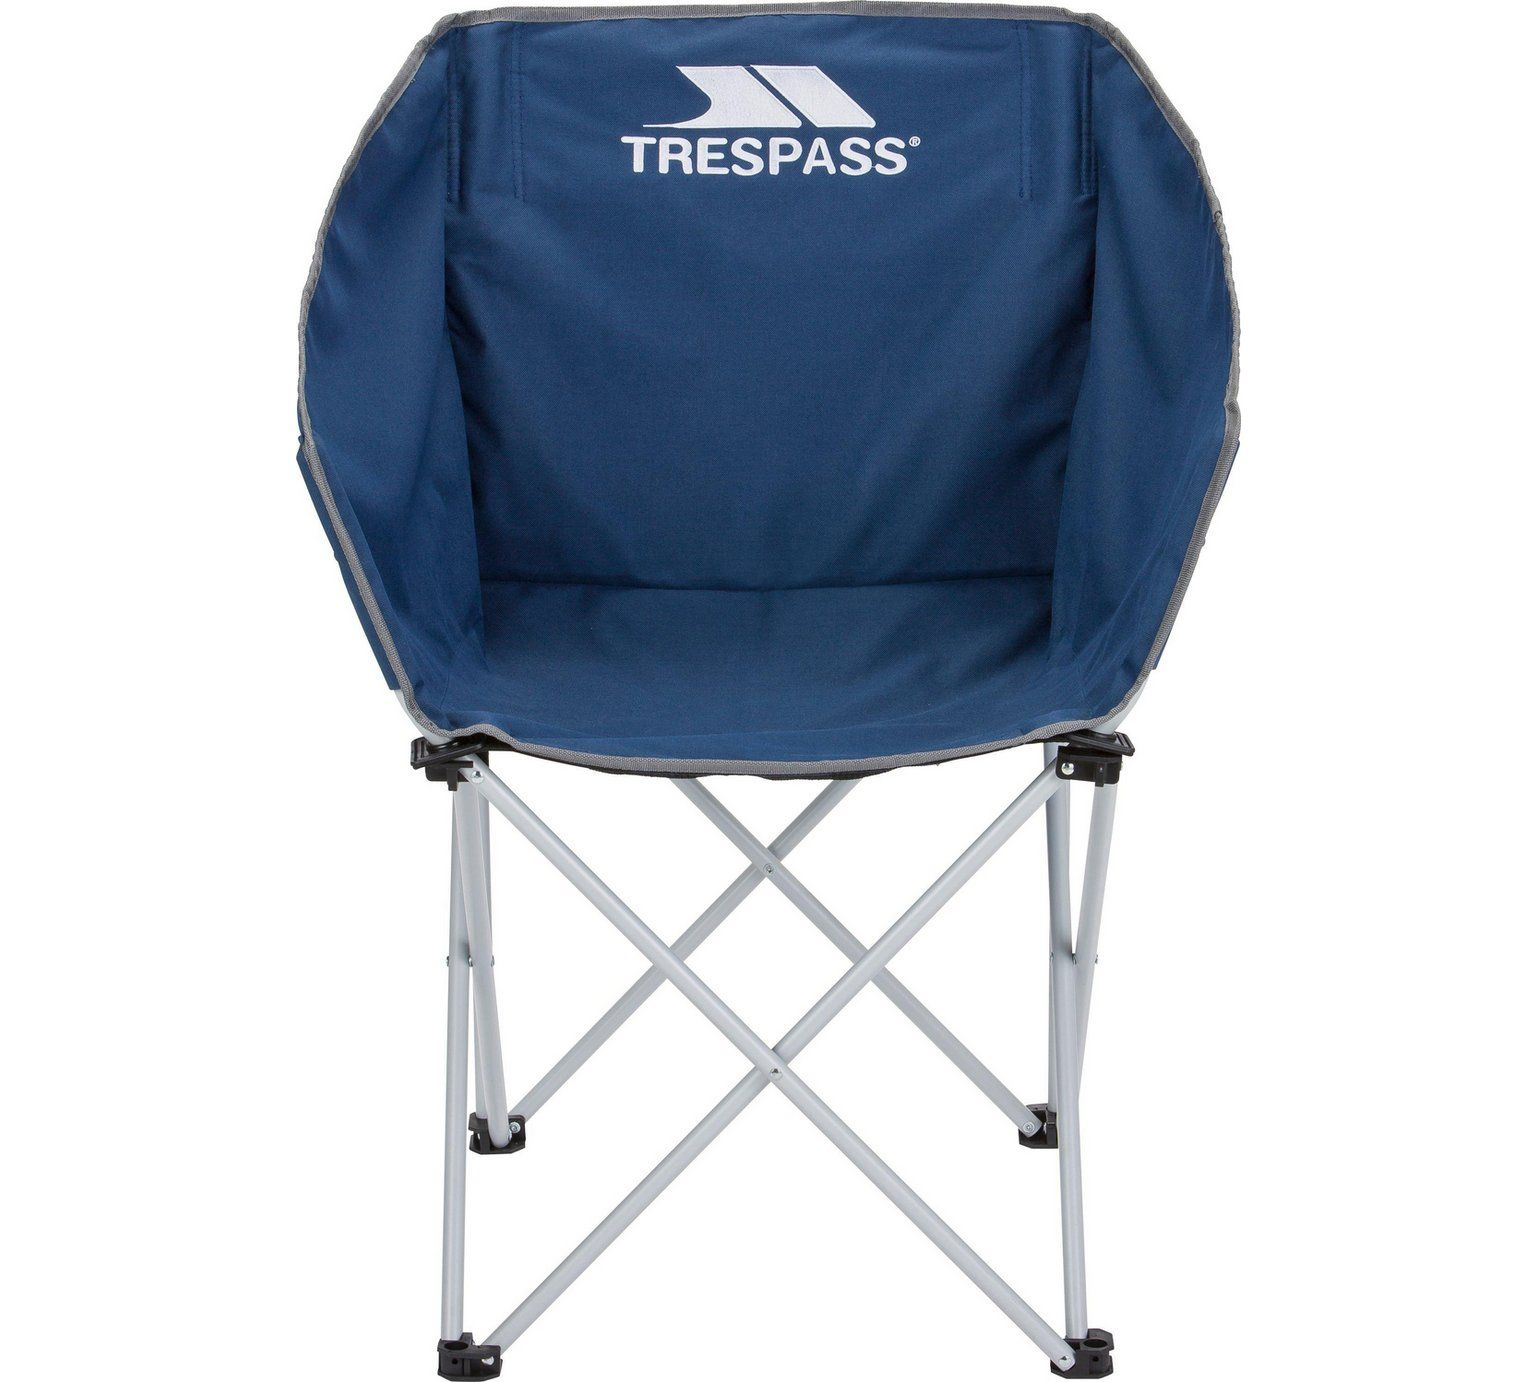 Buy Trespass Adult Bucket Camping Chair | Camping chairs